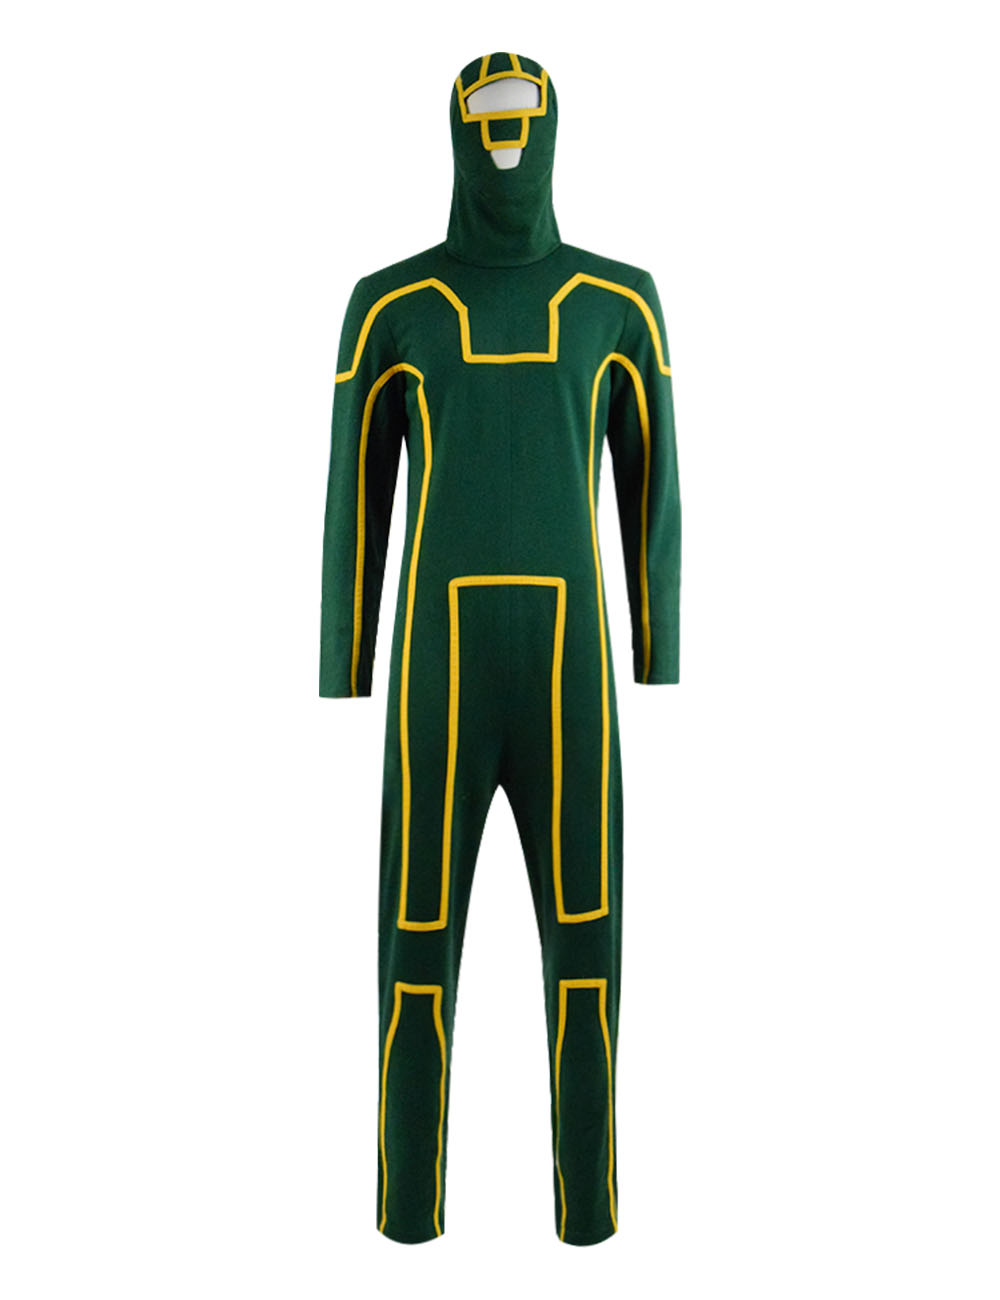 Cosdaddy Halloween Cosplay Kick Green Jumpsuit Dave Lizewski Costume Ass Party Bodysuit Battlesuit For Men